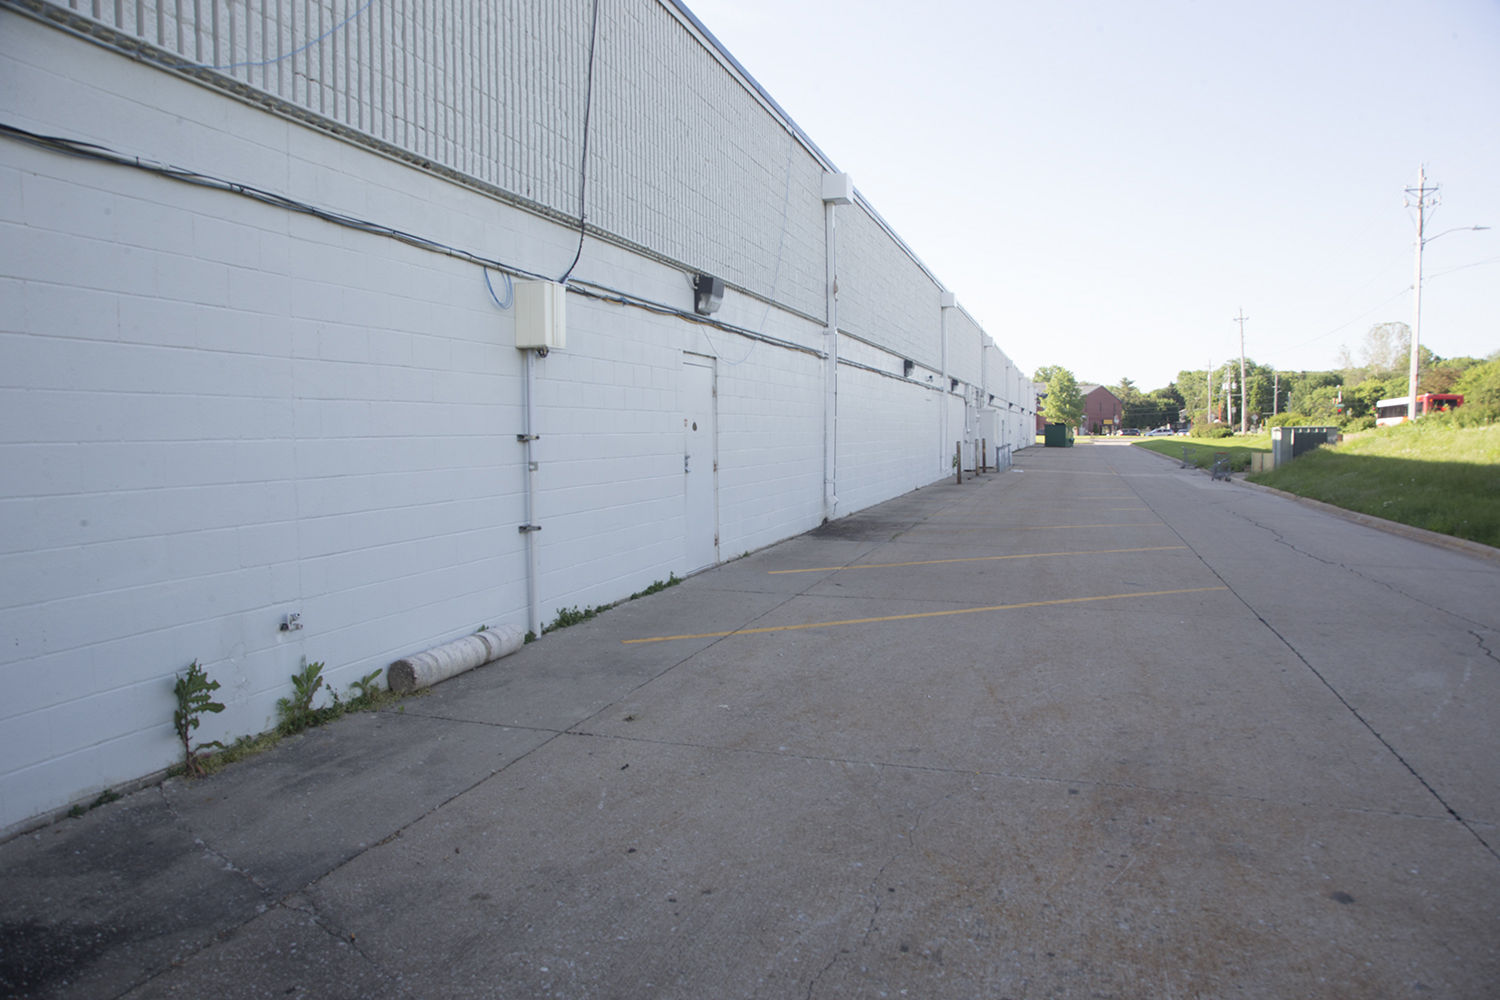 The future site of the Southside community mural is seen on Wednesday, June 5, 2019. The mural will be located off of Broadway St. by Faith Academy in Iowa City. (Emily Wangen/The Daily Iowan)